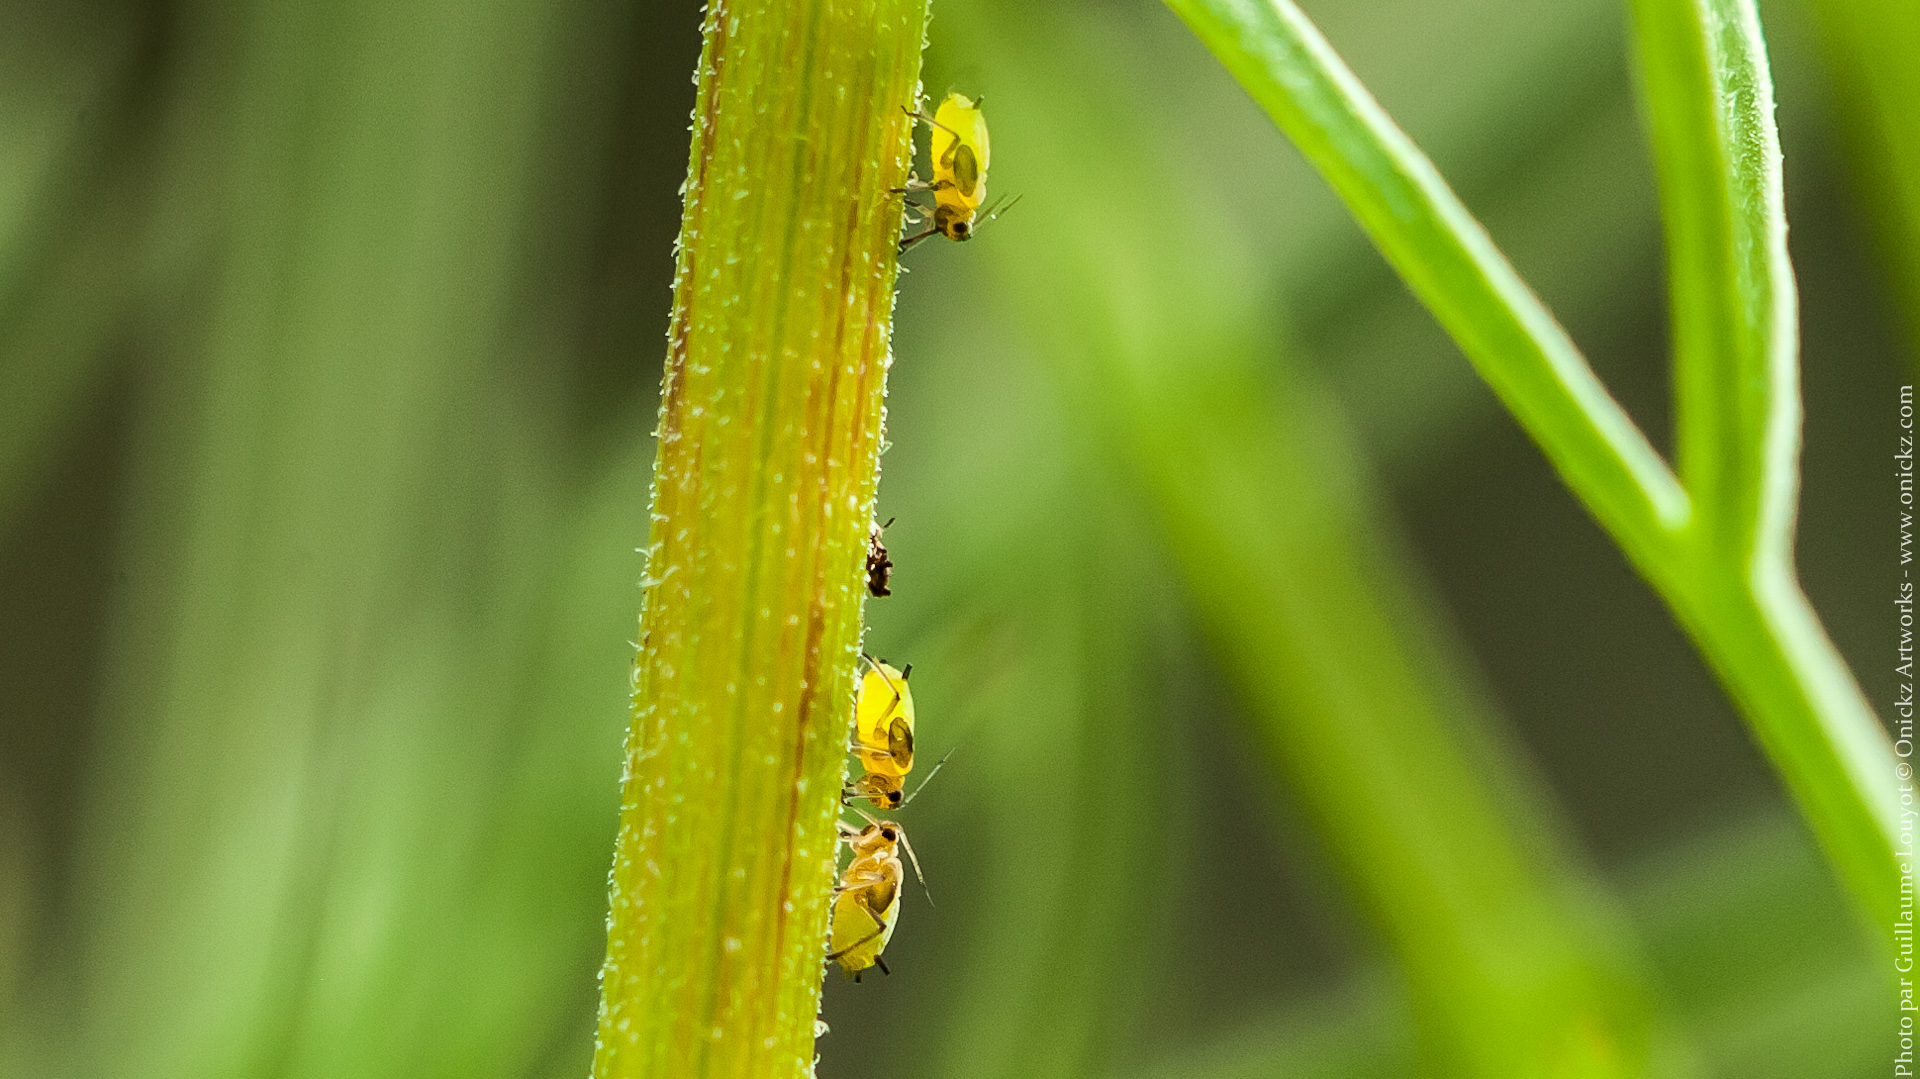 Baby Insects - photographie 30680 par Guillaume Louyot © Onickz Artworks